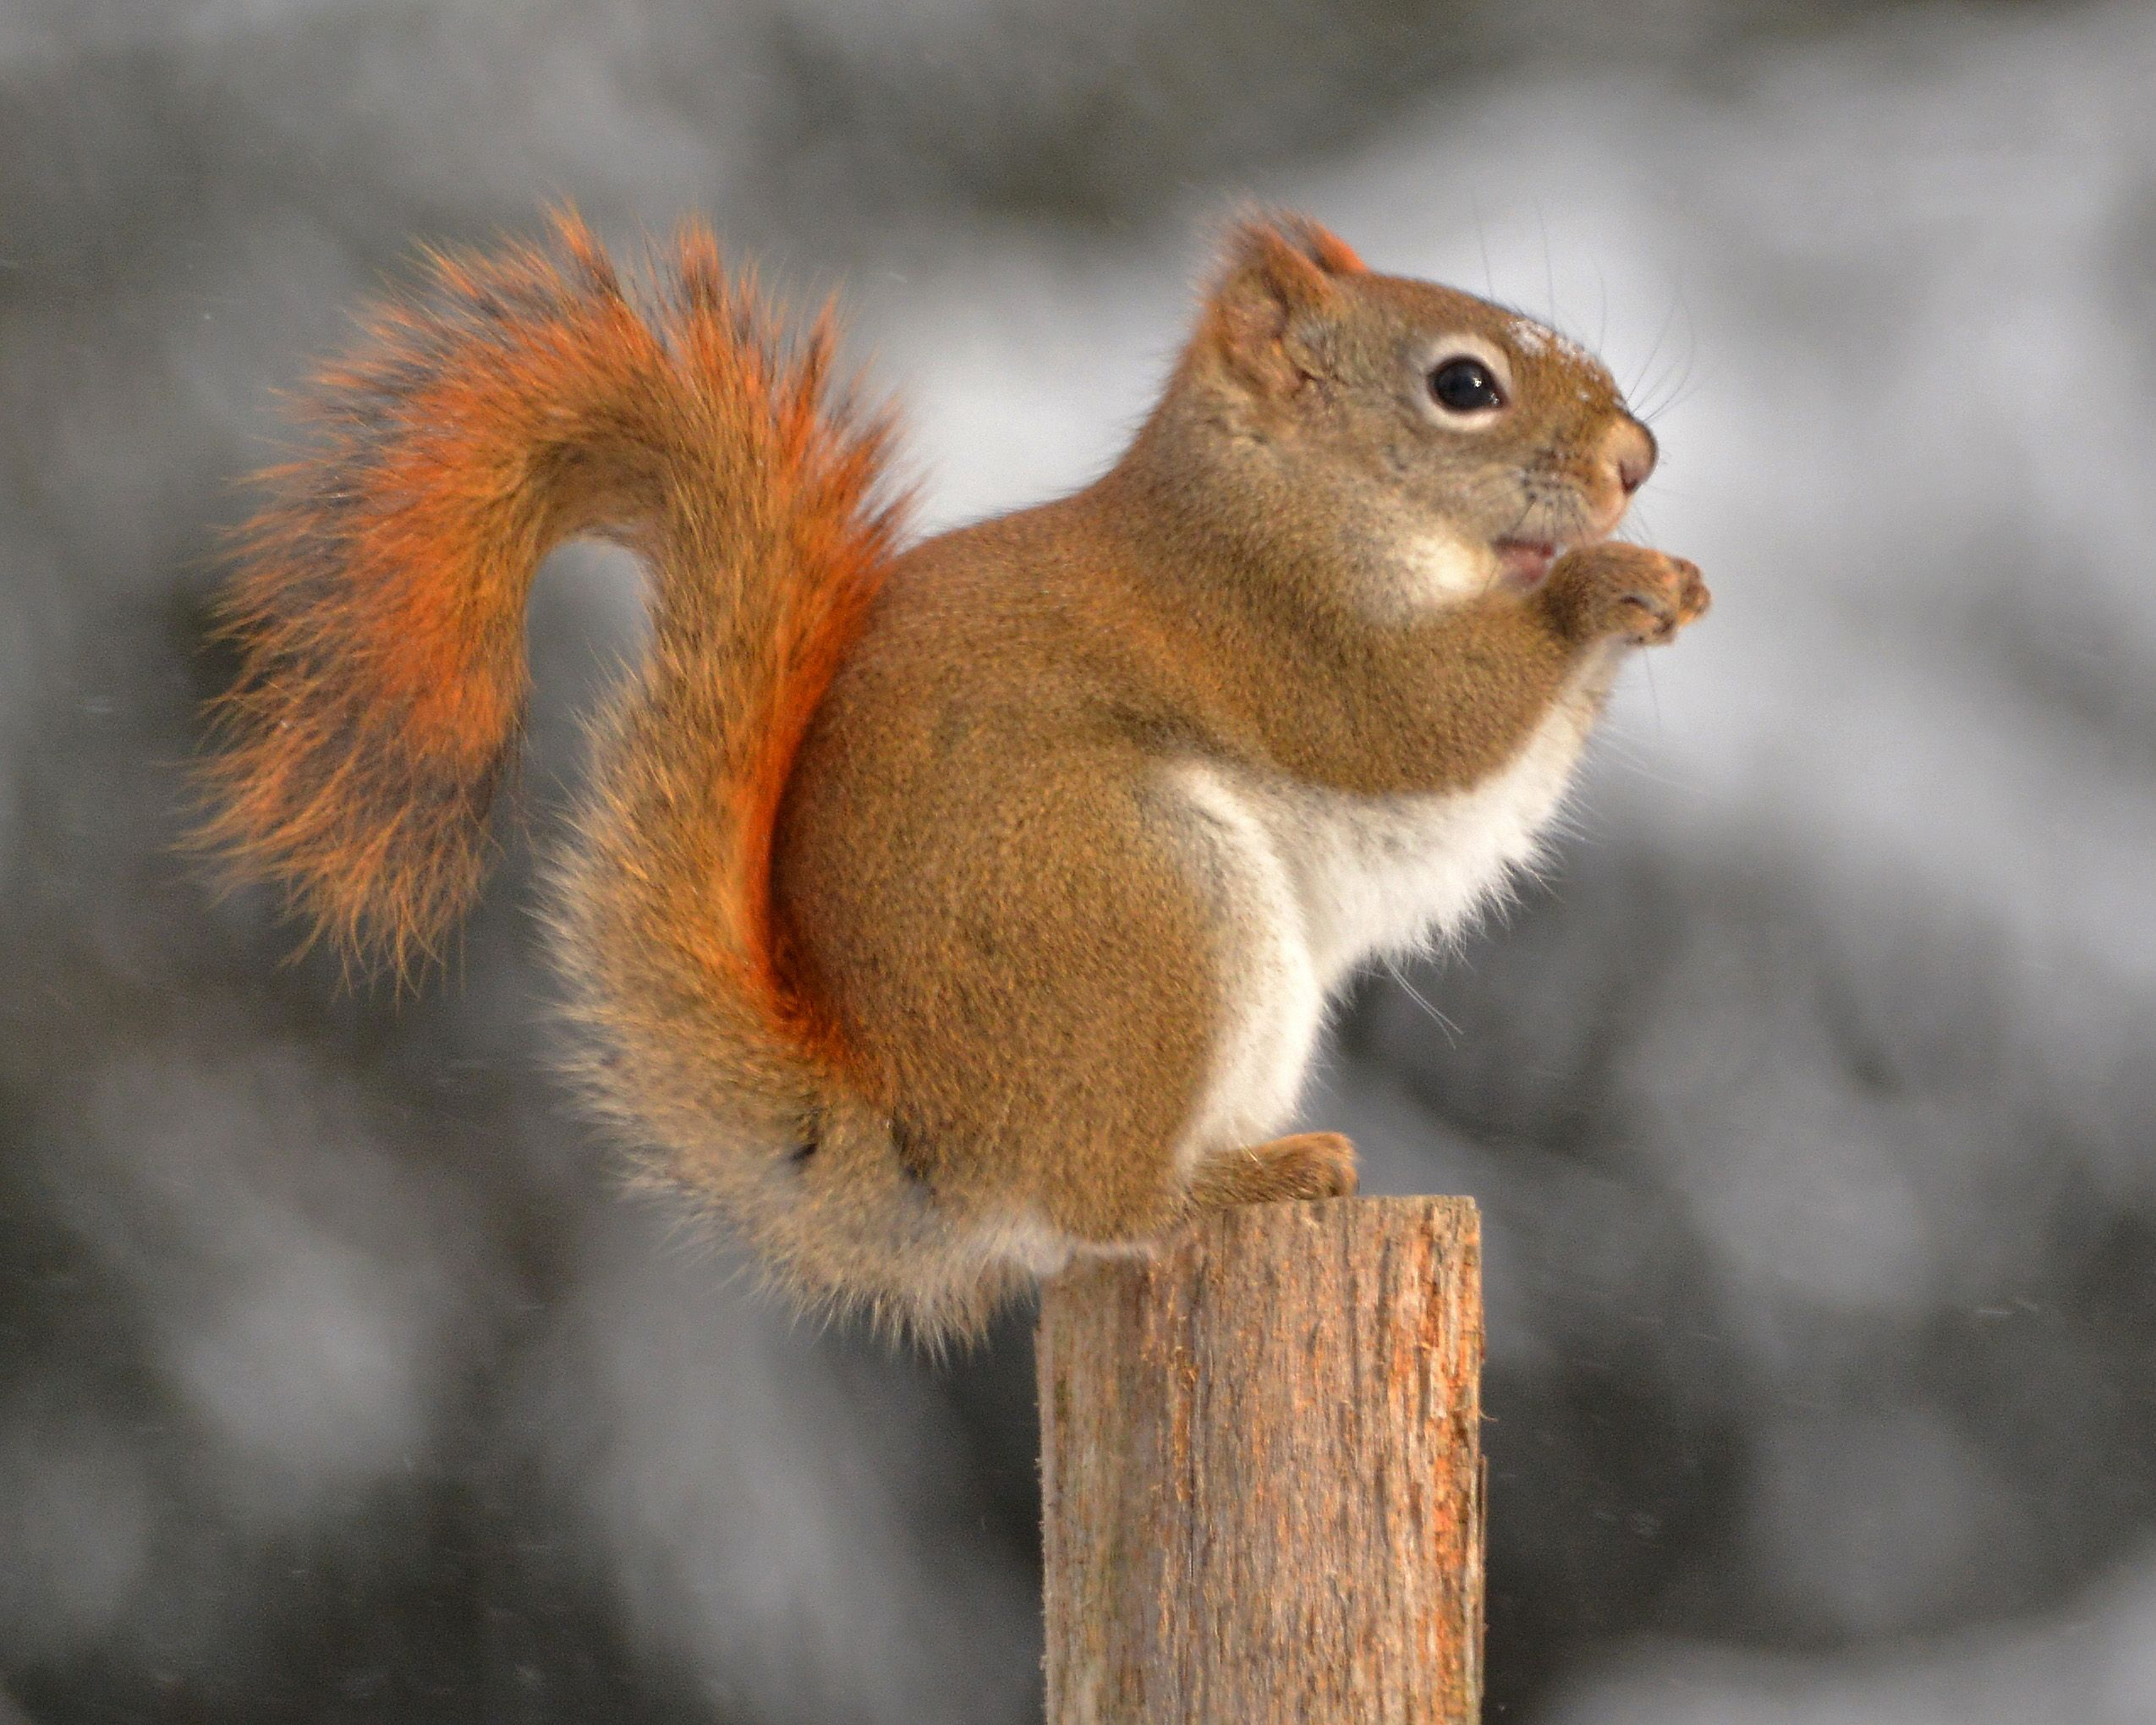 Meaning of white squirrel sighting - Image Result For American Red Squirrel